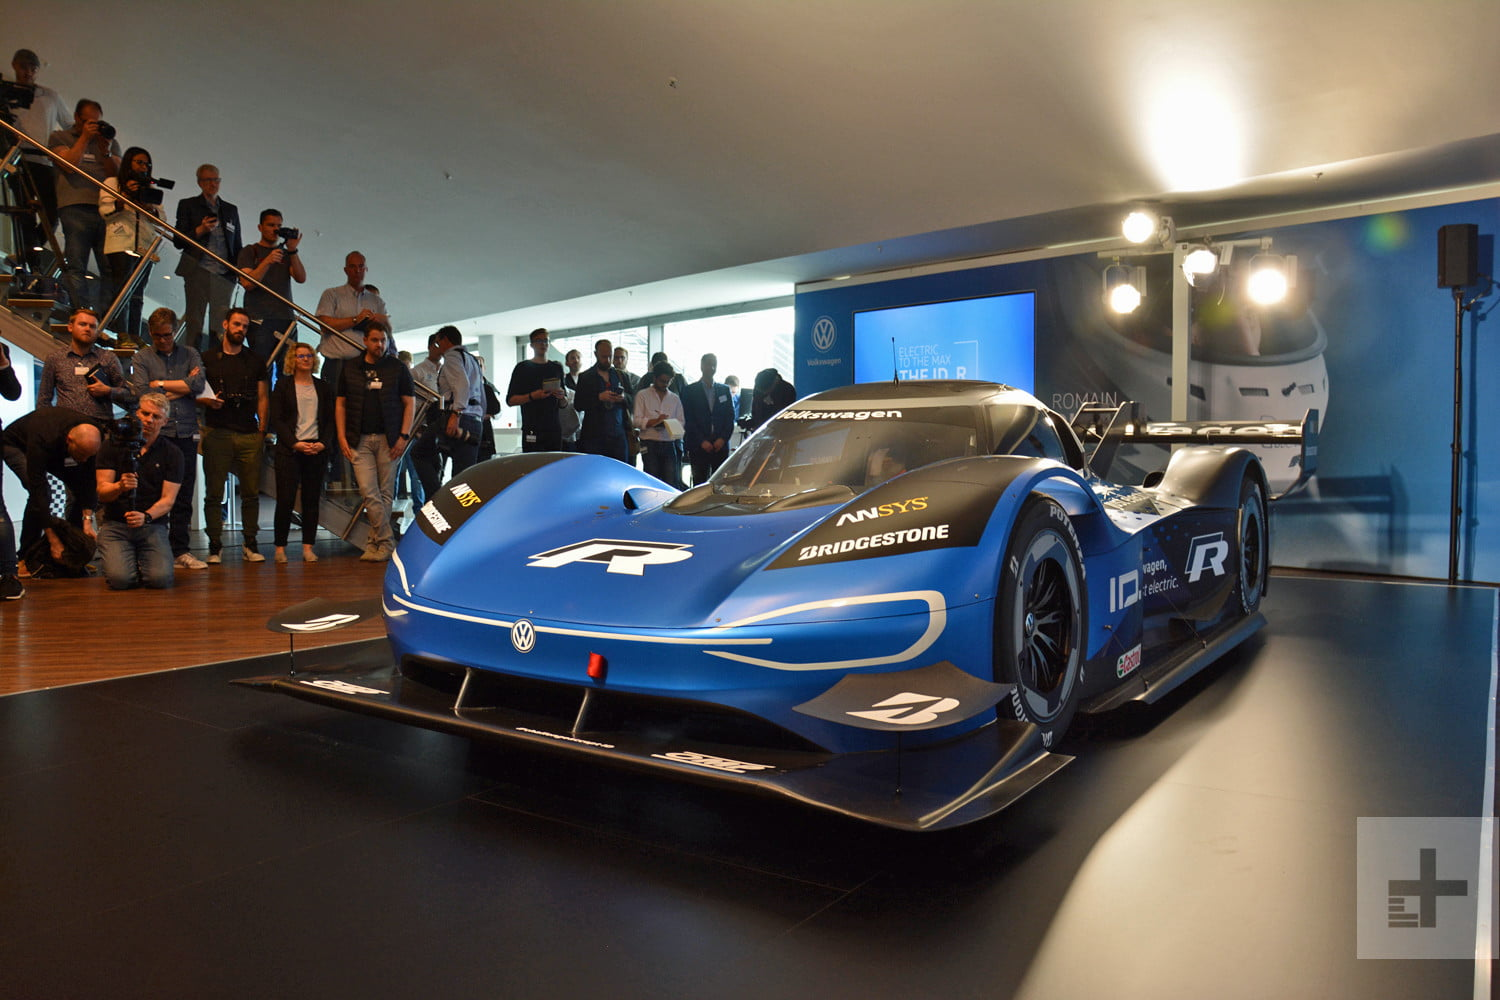 VW's electric racer is lightning fast, but can it tame racing's toughest track?